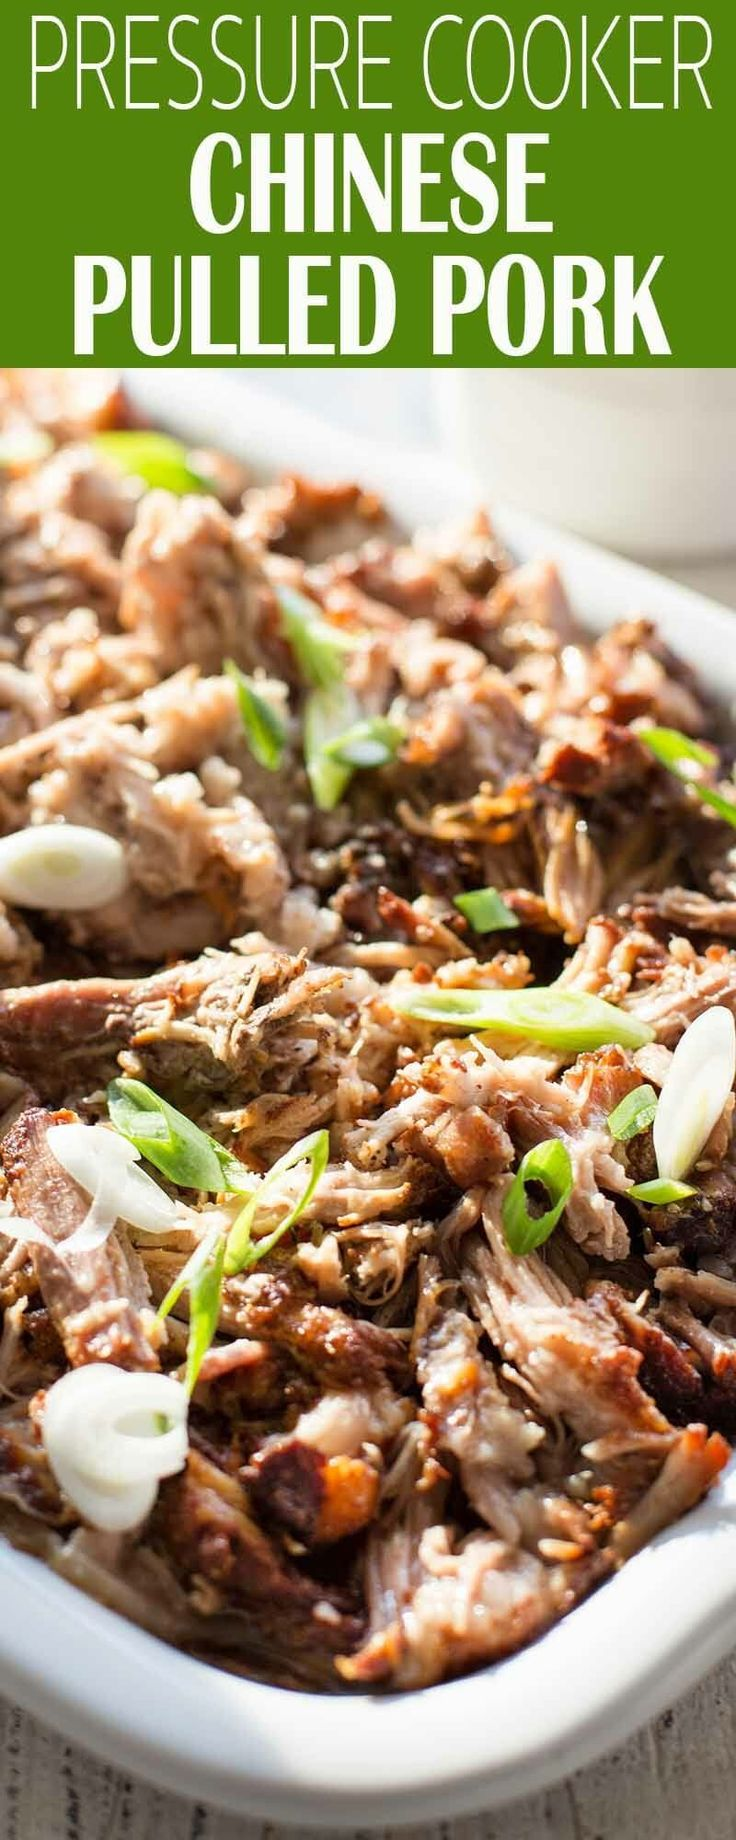 Chinese Pulled Pork in the pressure cooker! This is a sweet and spicy twist on pulled pork, perfect for piling on buns, adding to tacos, or making traditional Chinese steamed buns. #bbq #PulledPork #PressureCooker #InstantPot #pulledporkrecipefriedrice